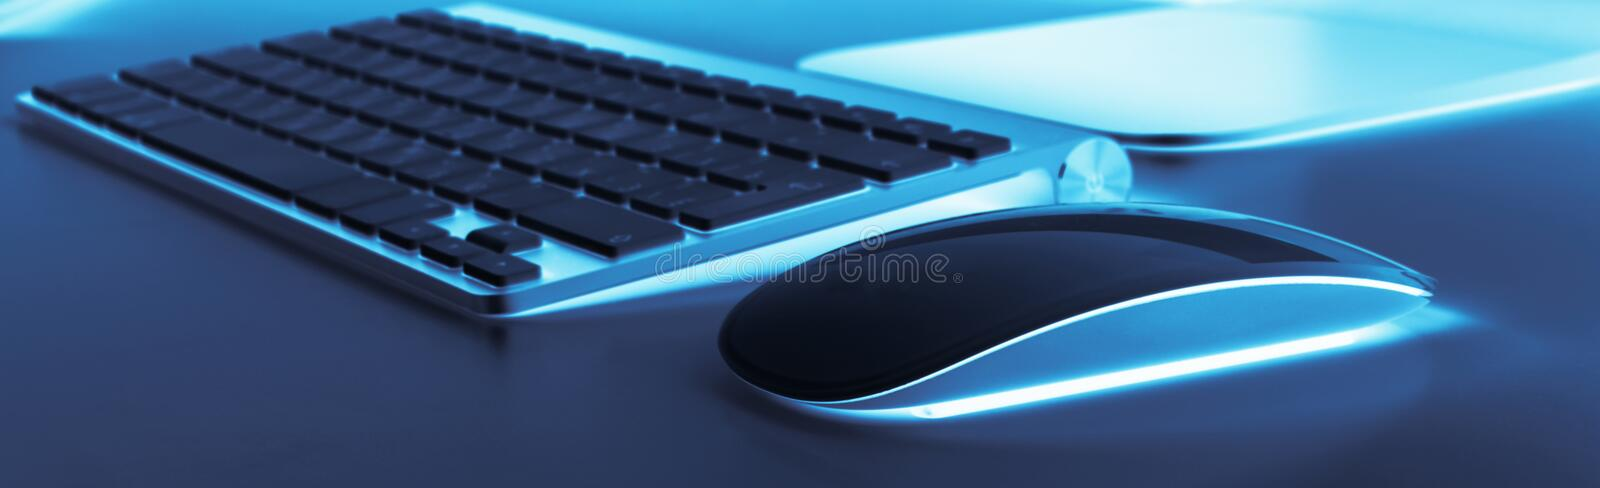 Business workplace with computer wireless keyboard and mouse on old blue table background. Office desk with copy space. stock photos